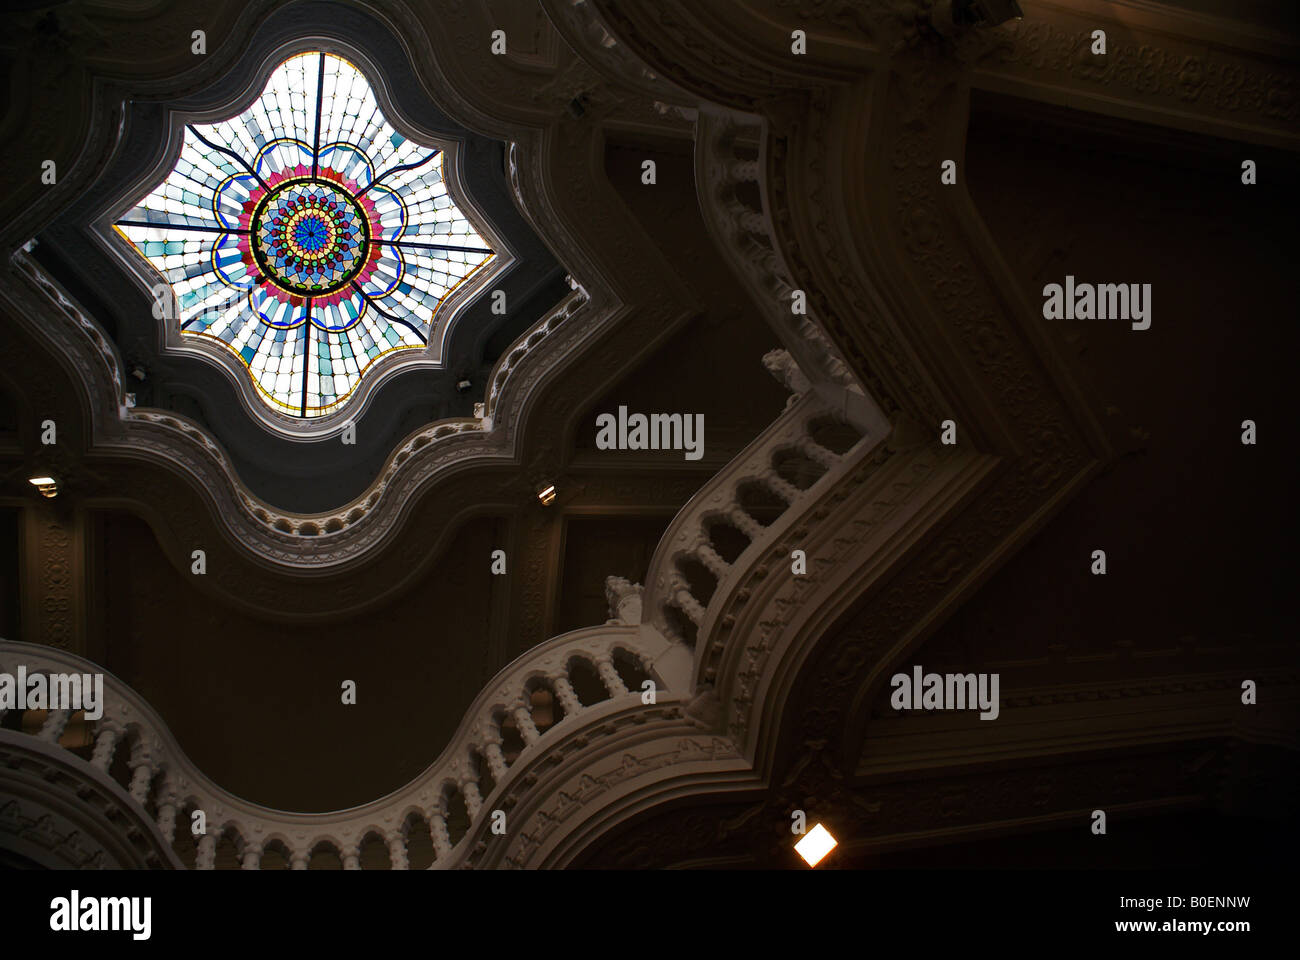 Budapest Museum Applied Arts In High Resolution Stock Photography And Images Alamy